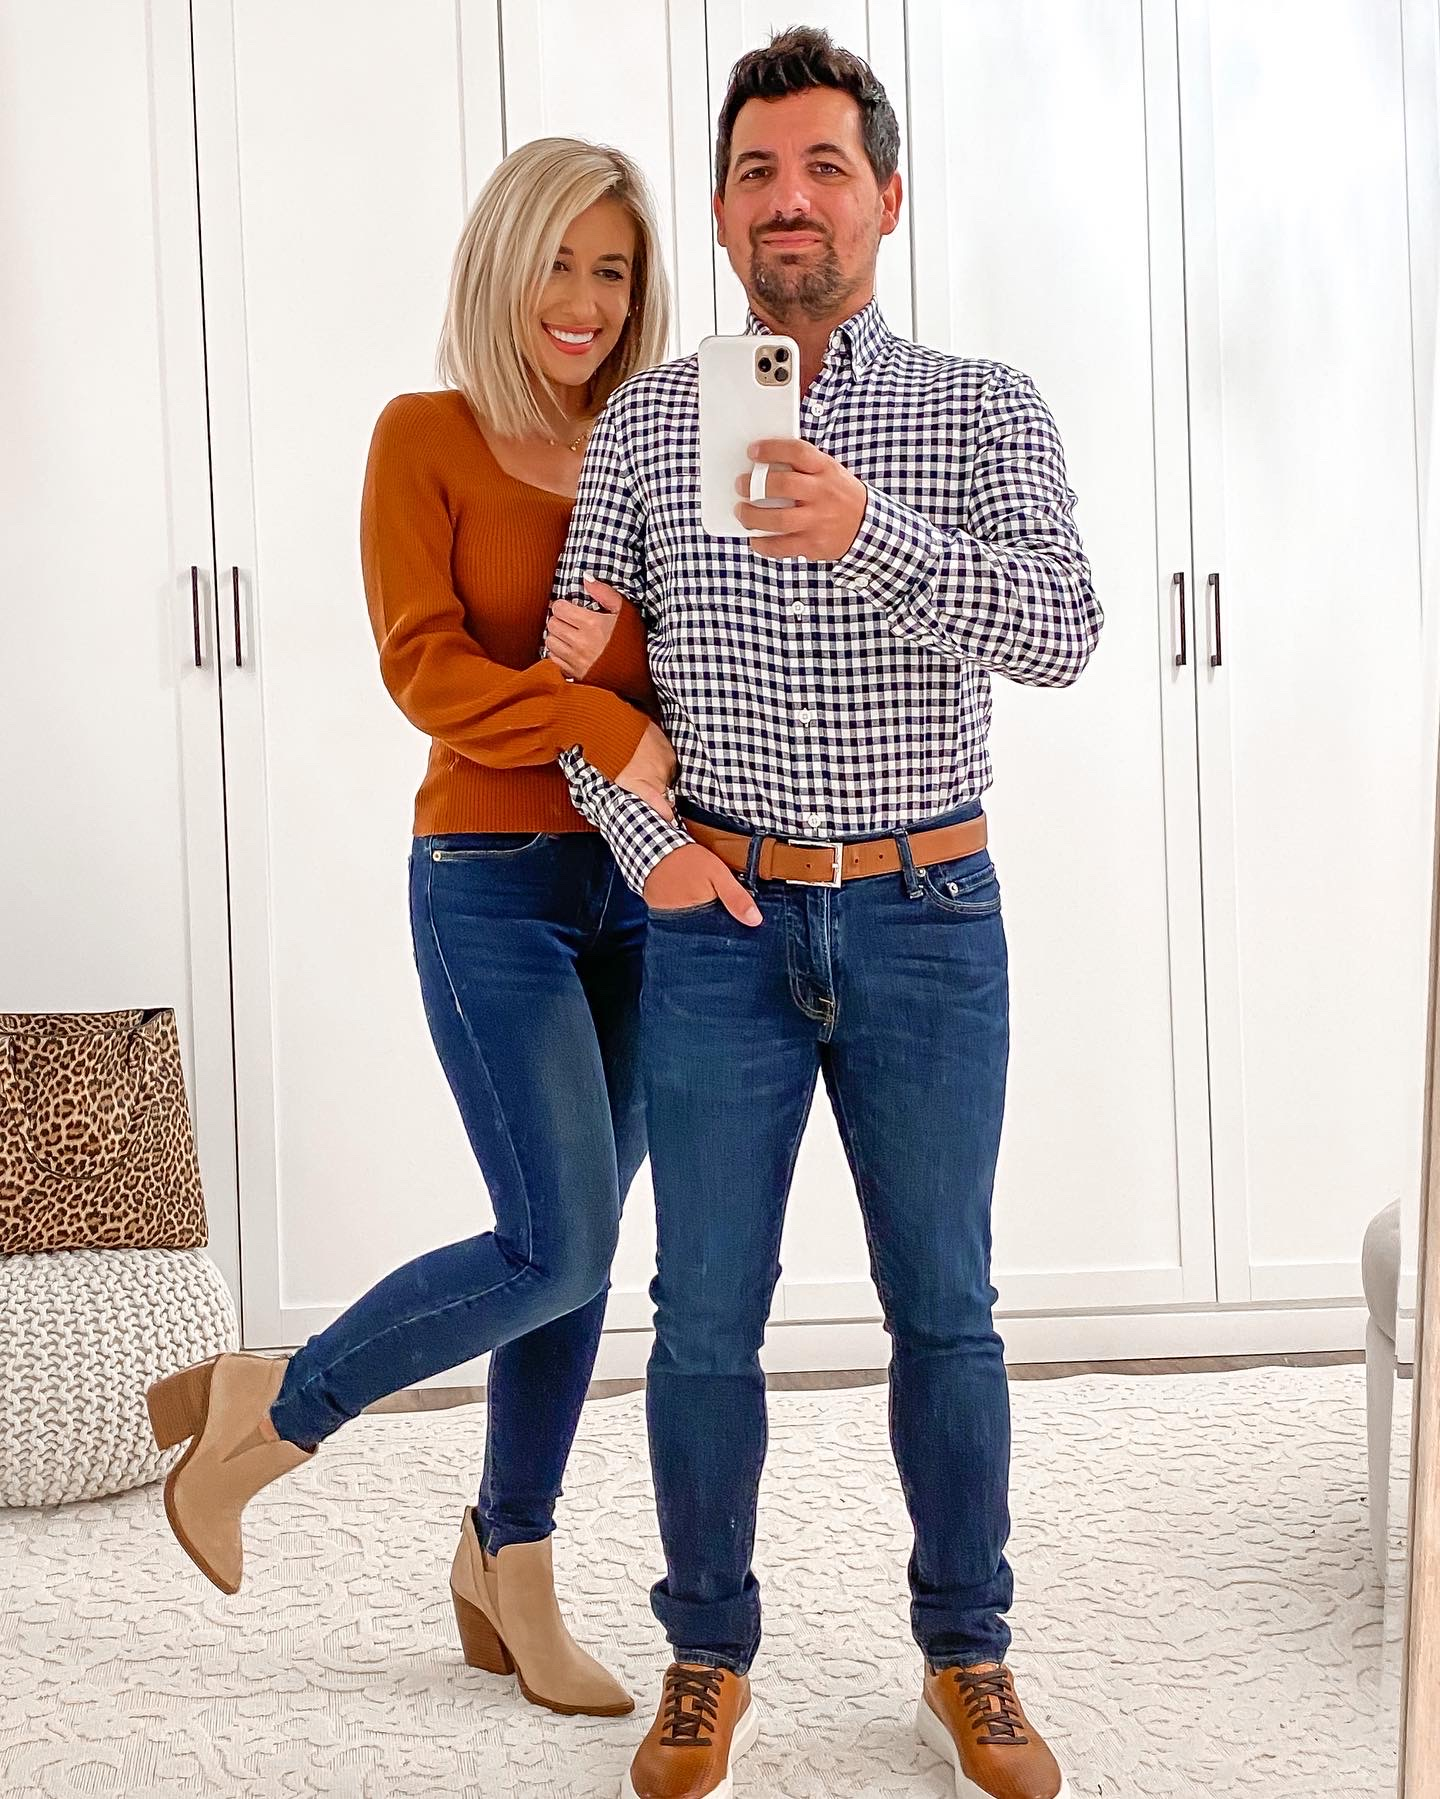 Casual HIS & HERS COUPLE Fall outfit Idea Laura Beverlin7